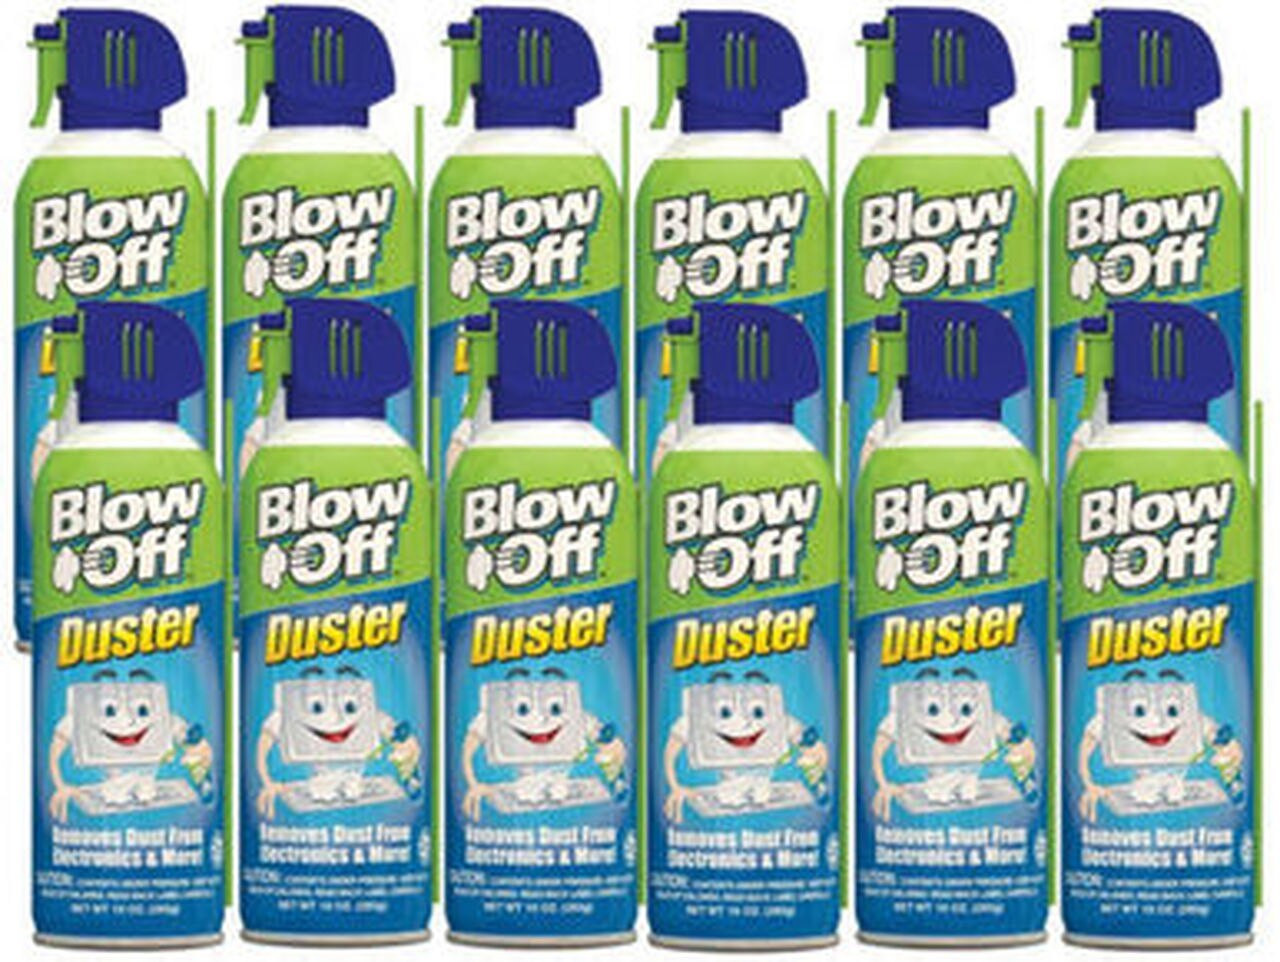 Max Pro Blow Off 152-112-226 Air Duster - 12 Pack